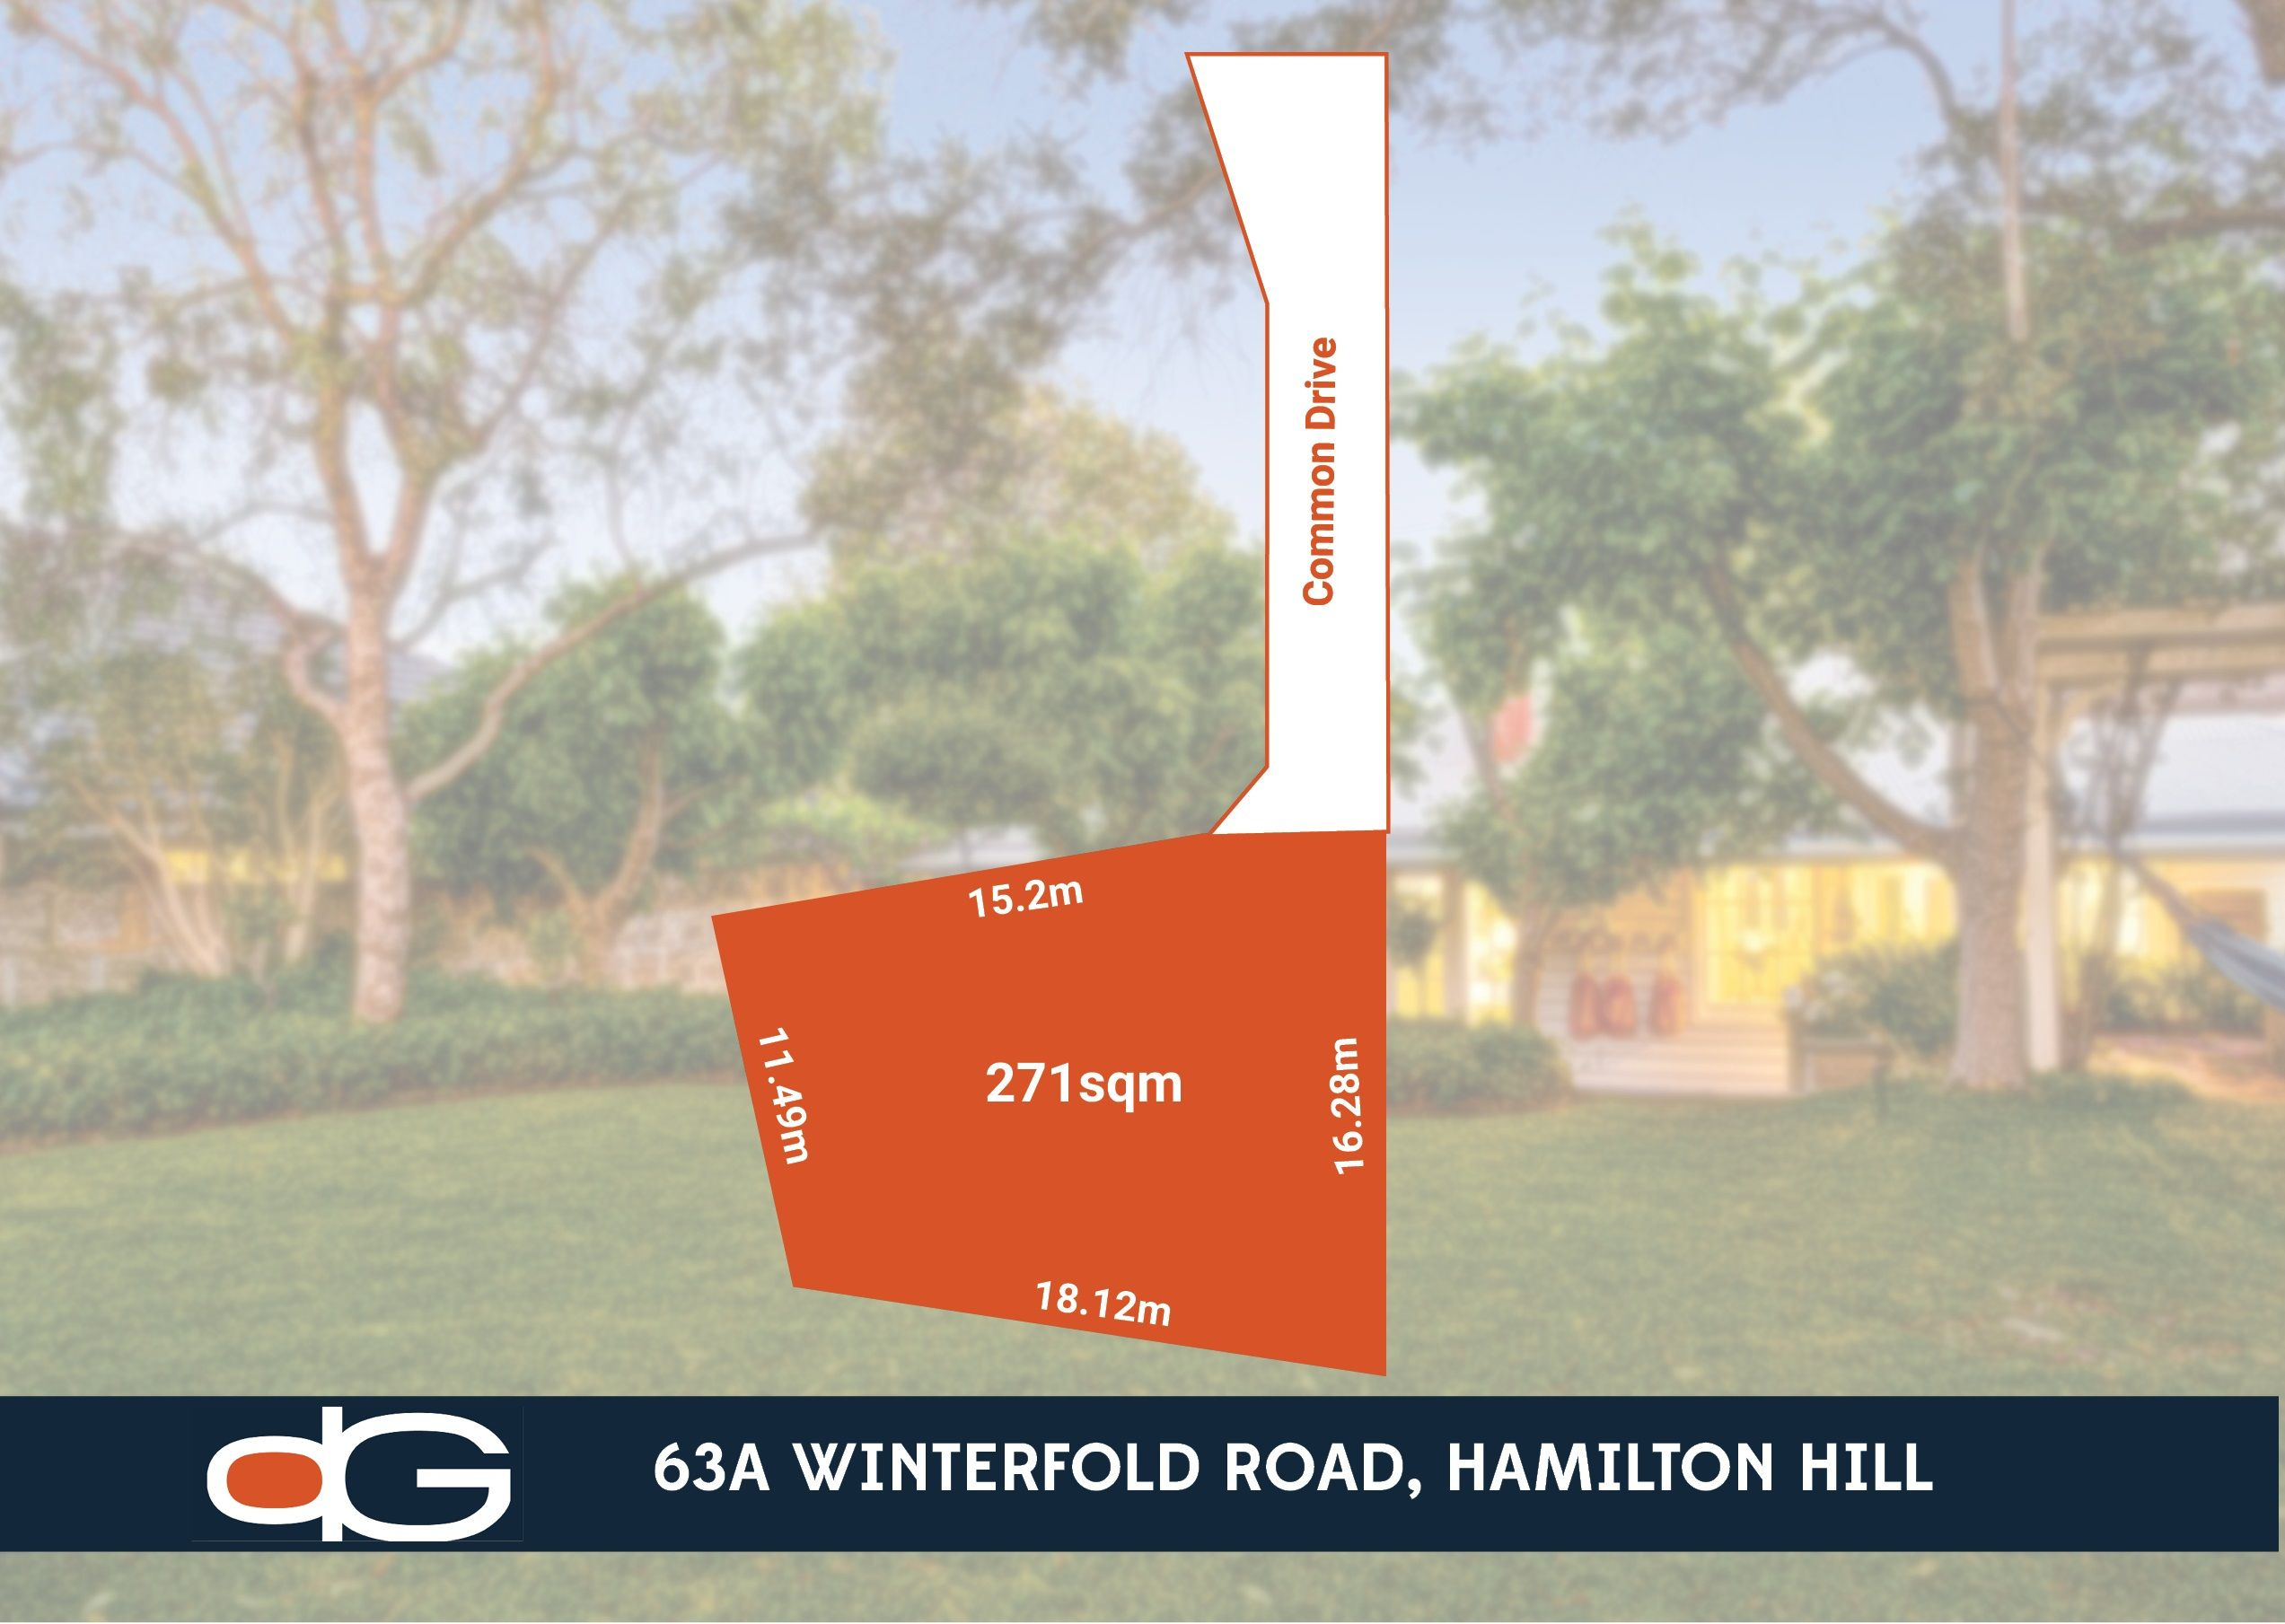 63A Winterfold Road, Hamilton Hill